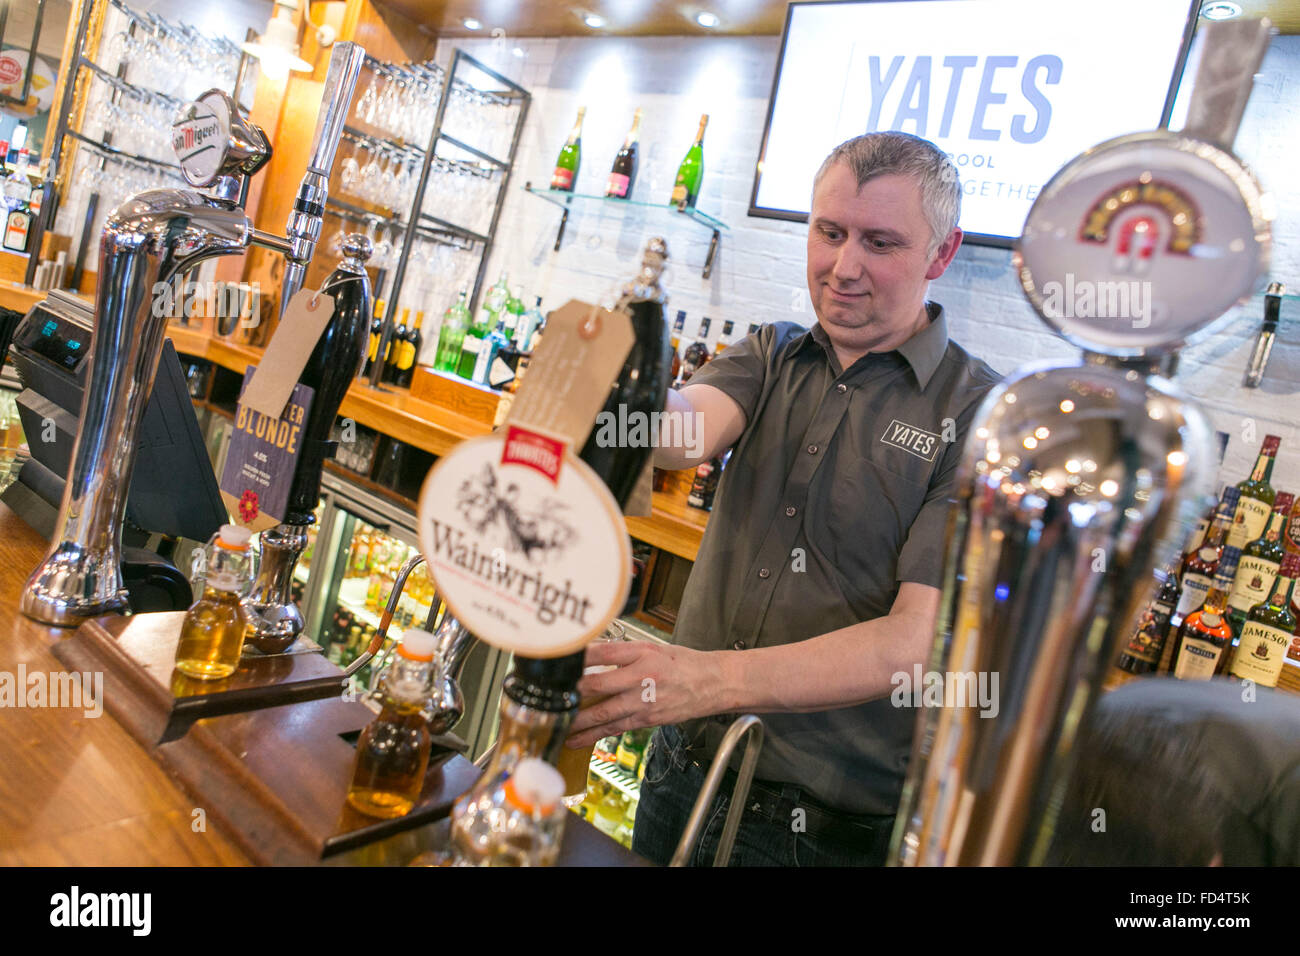 draught real ales for sale in a Yates Pub - Stock Image